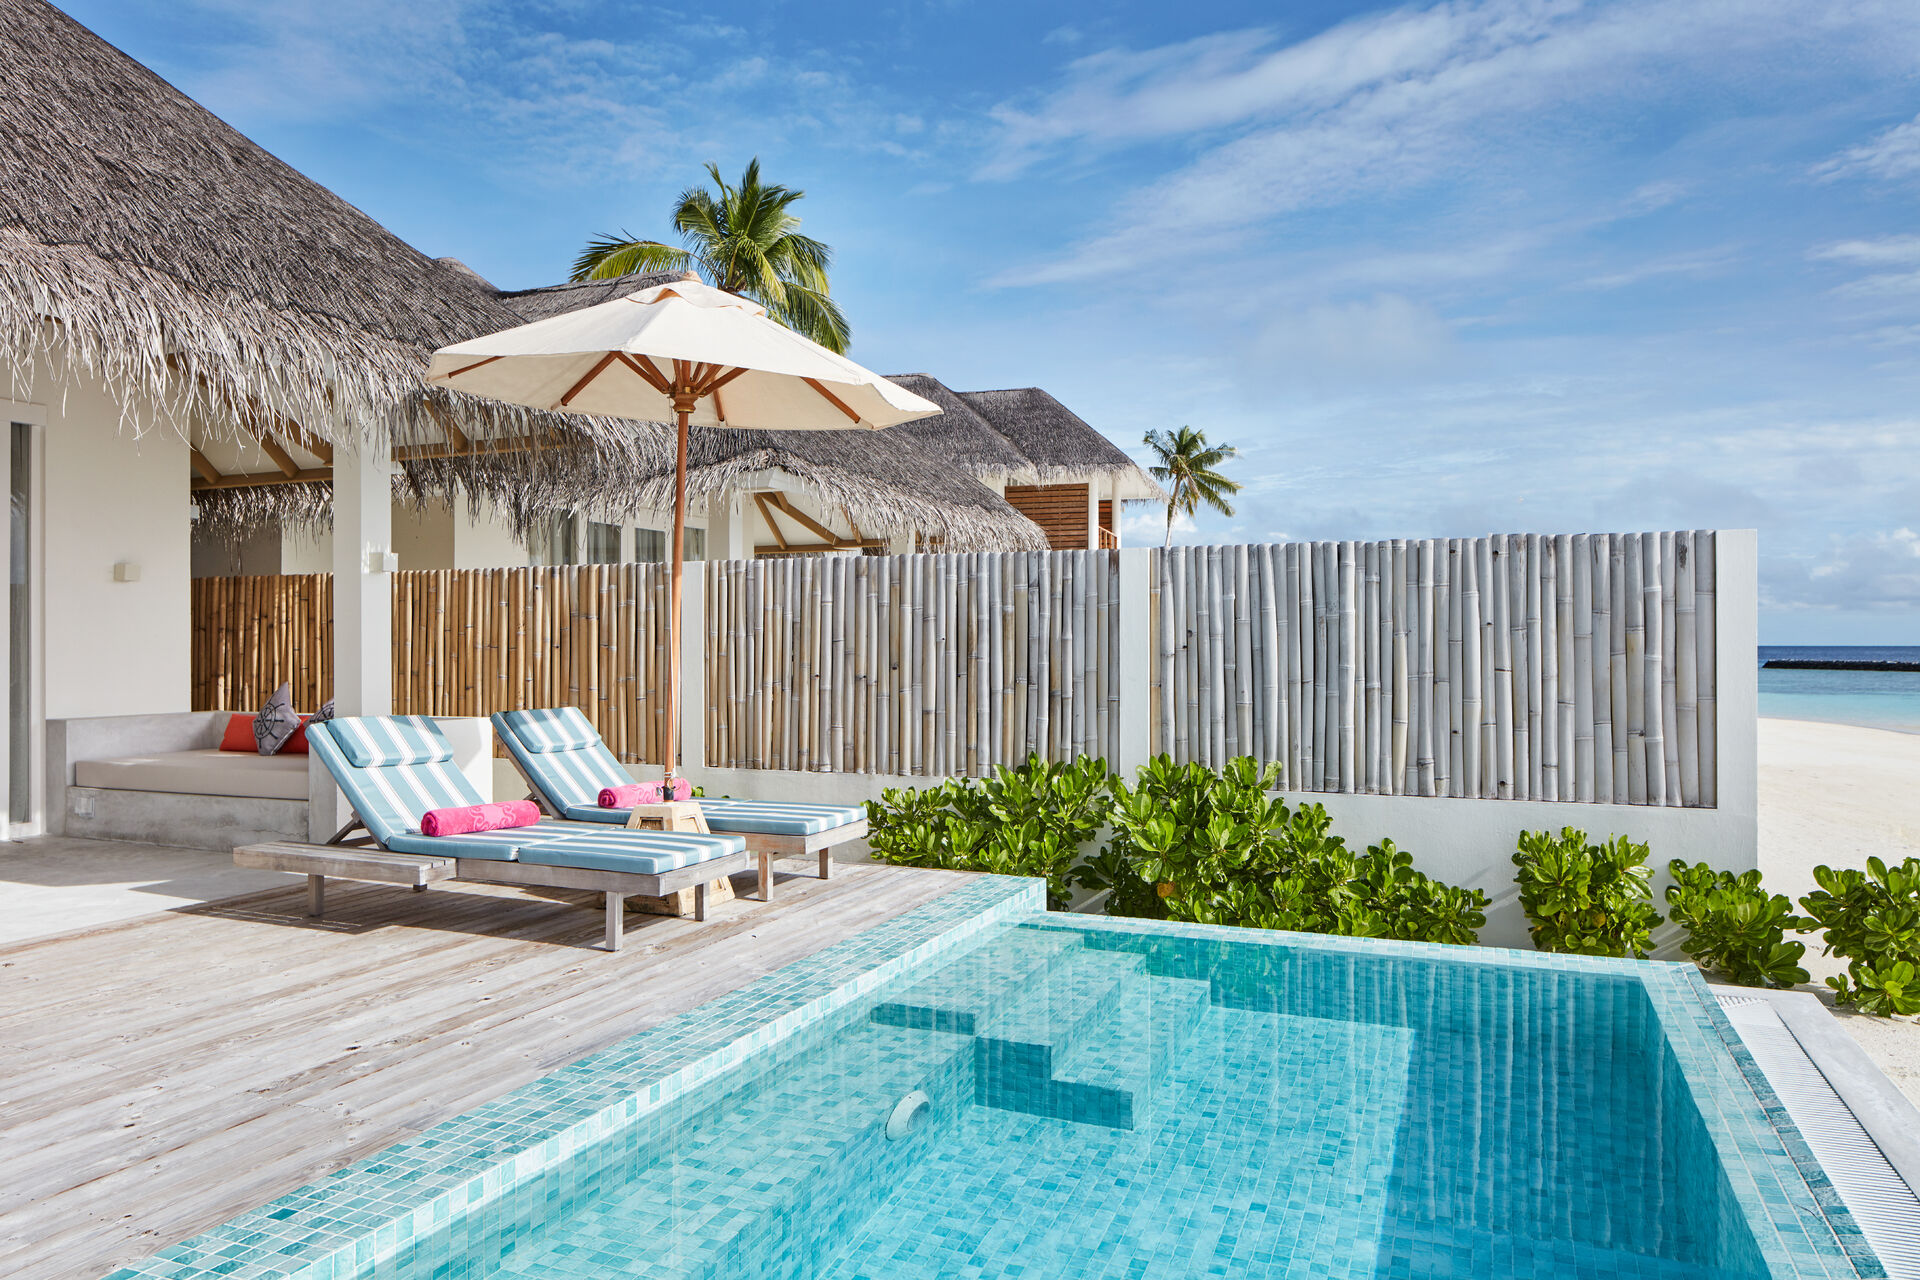 https://cms.satur.sk/data/imgs/tour_image/orig/iruveli_beach_suite_with_pool_1-1939697.jpg